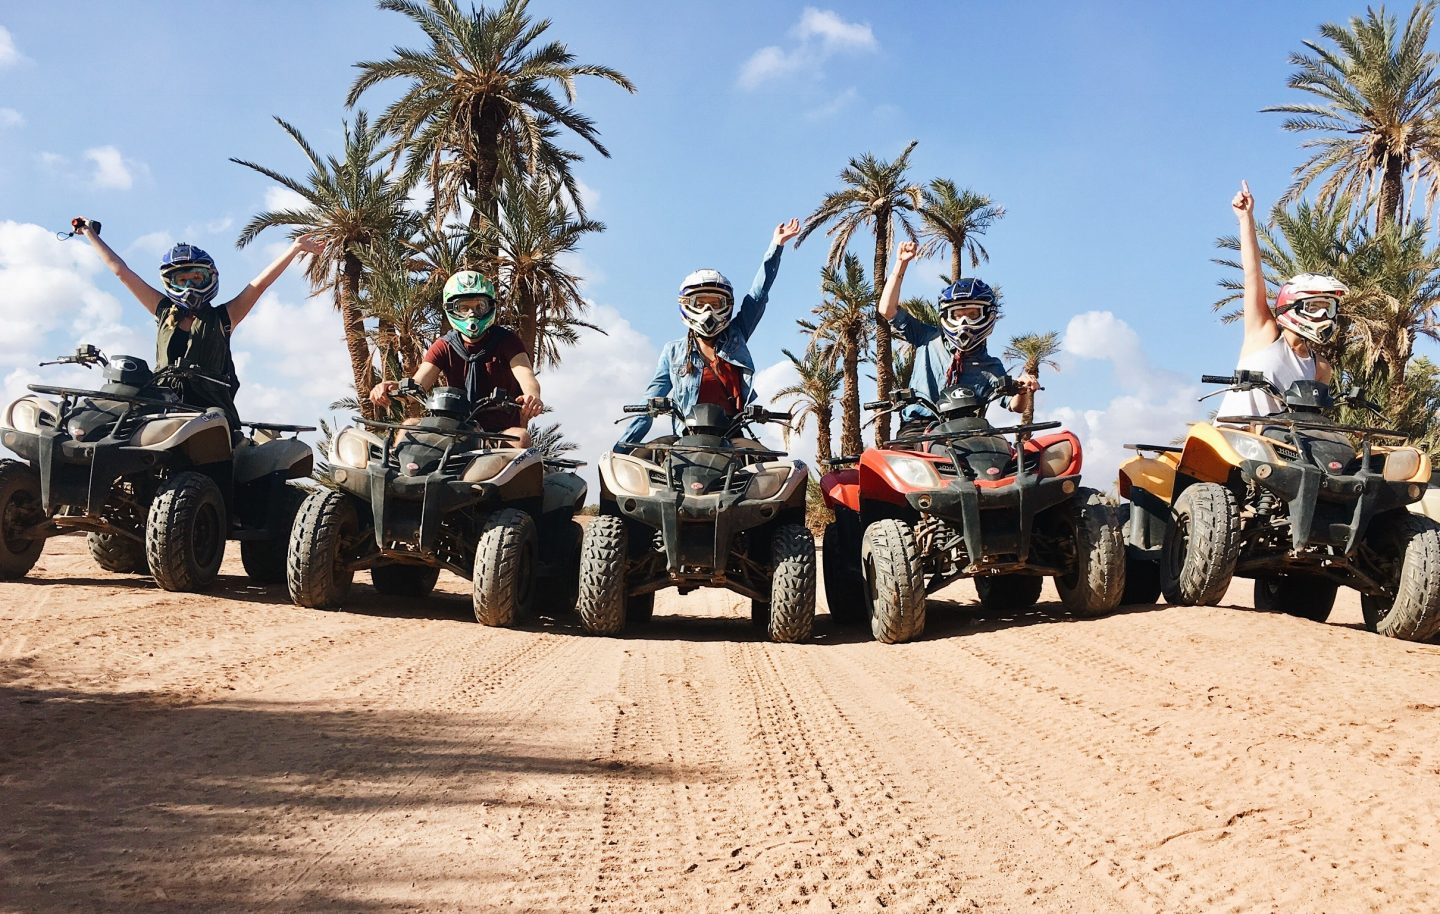 ATVing in the Moroccan desert!